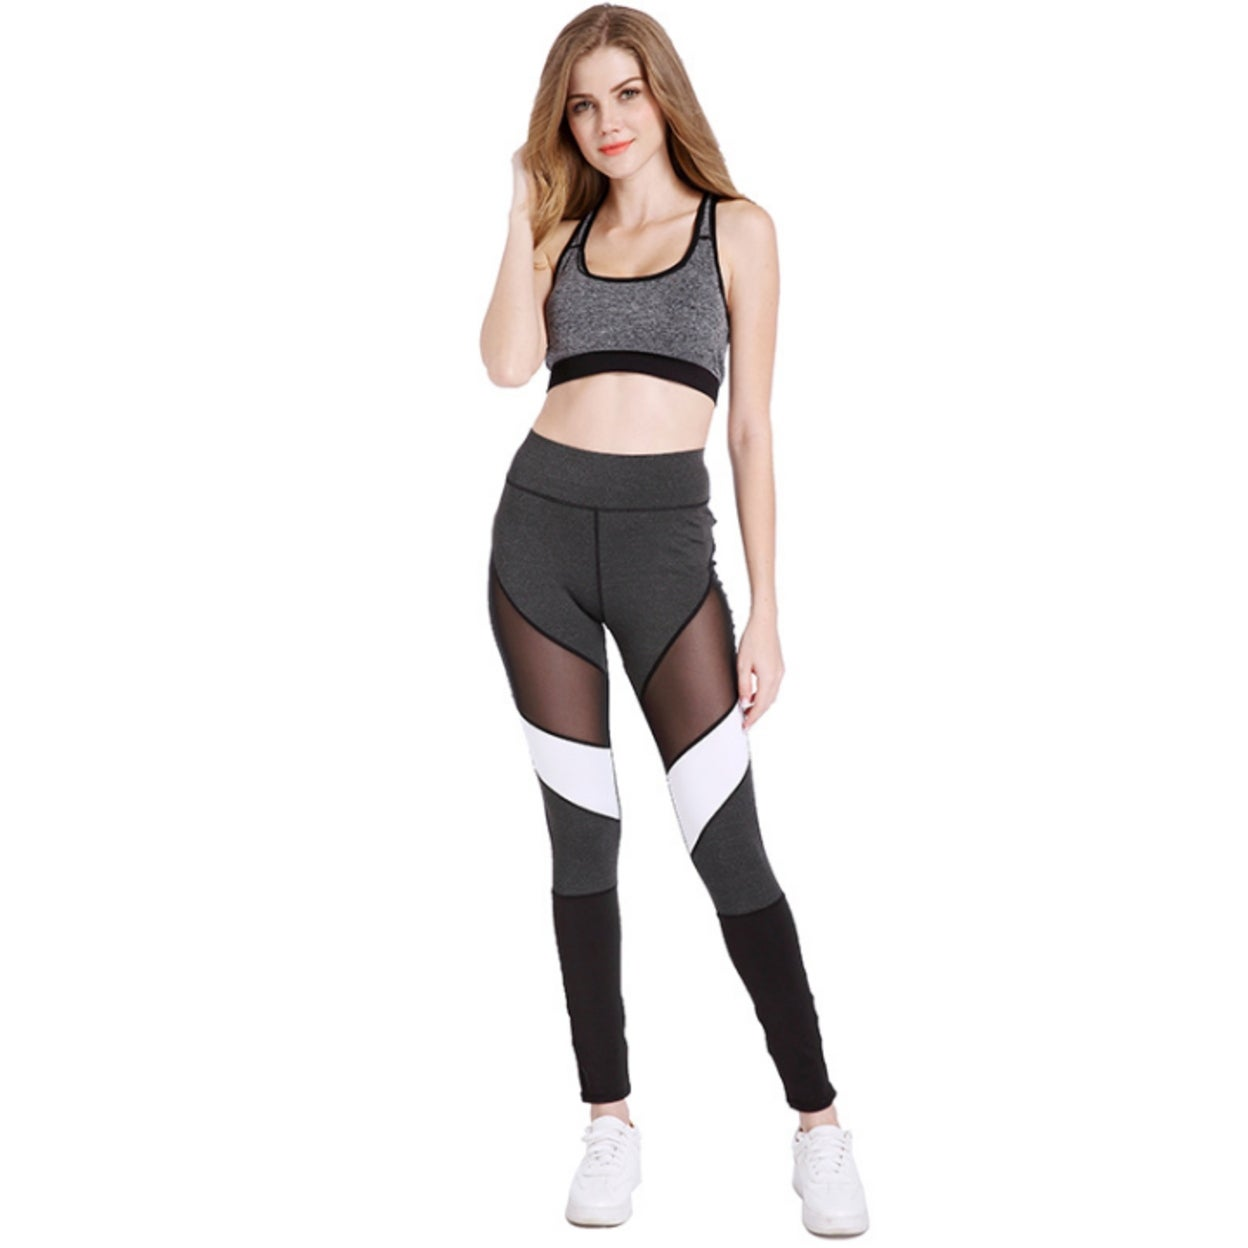 various design 2019 discount sale lowest price Women Fitness Leggings Color Block Autumn Winter Workout Pants